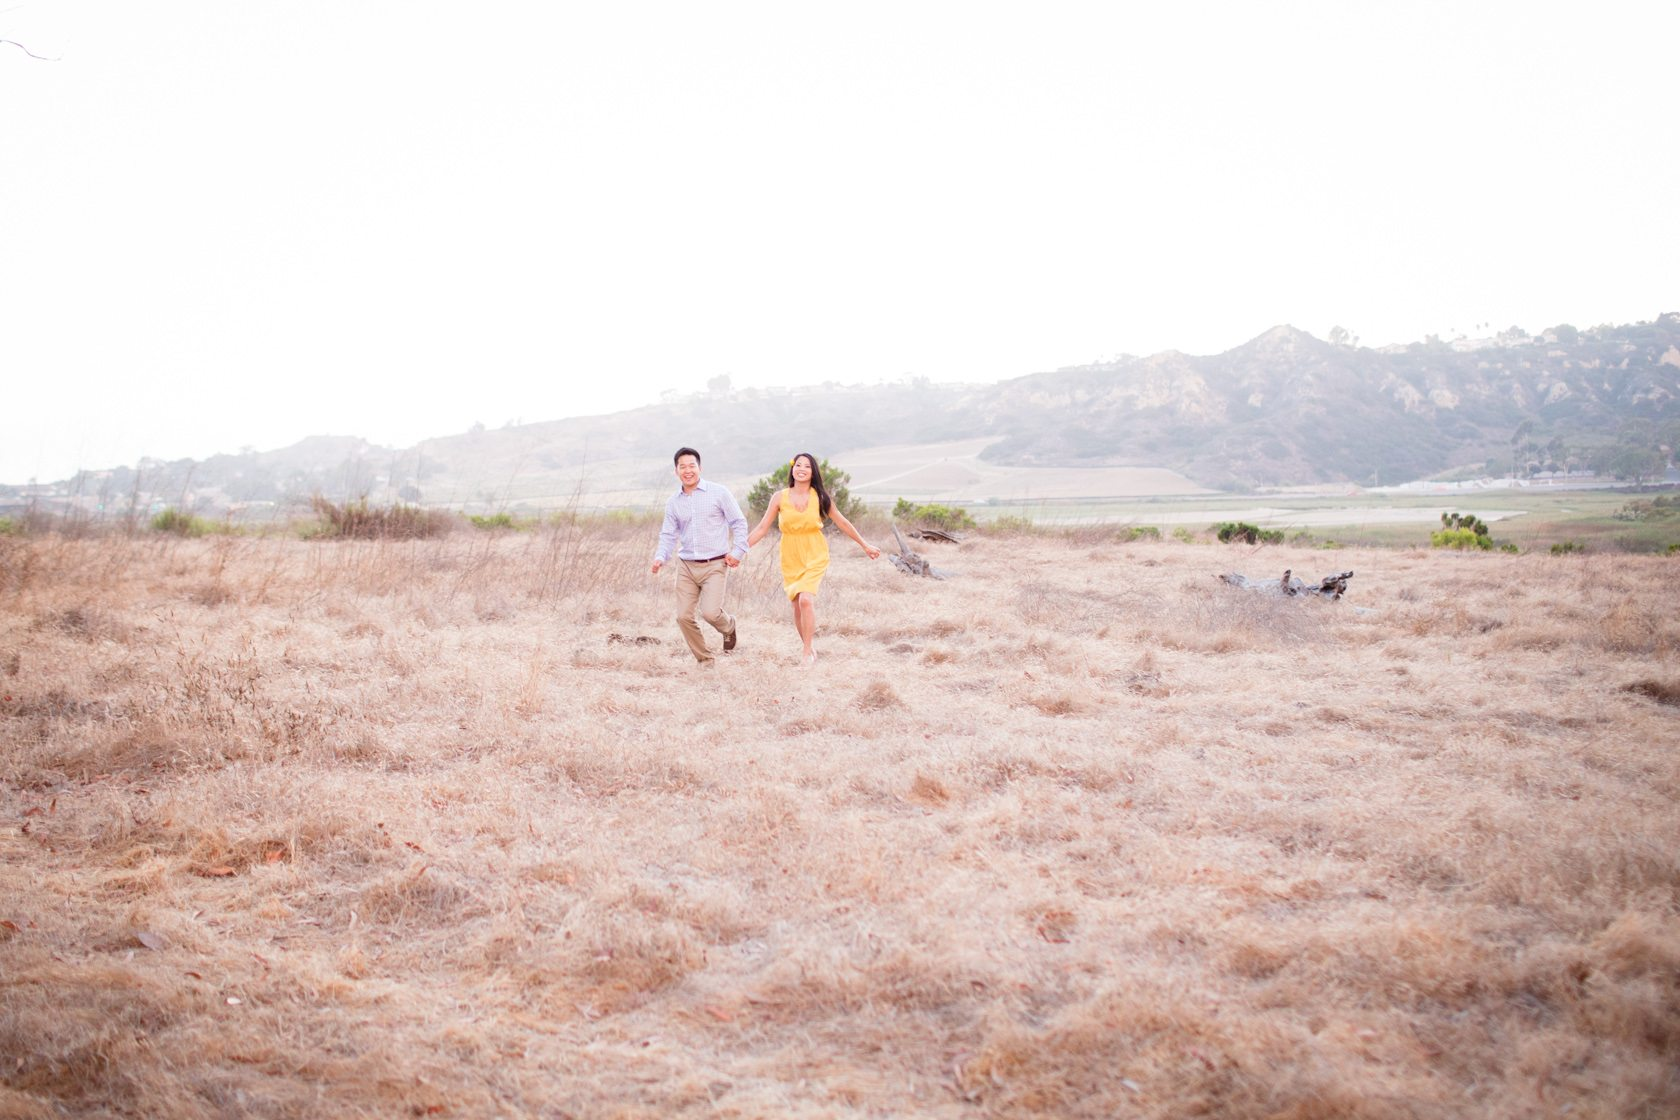 Soft_Dreamy_Engagement_361.jpg